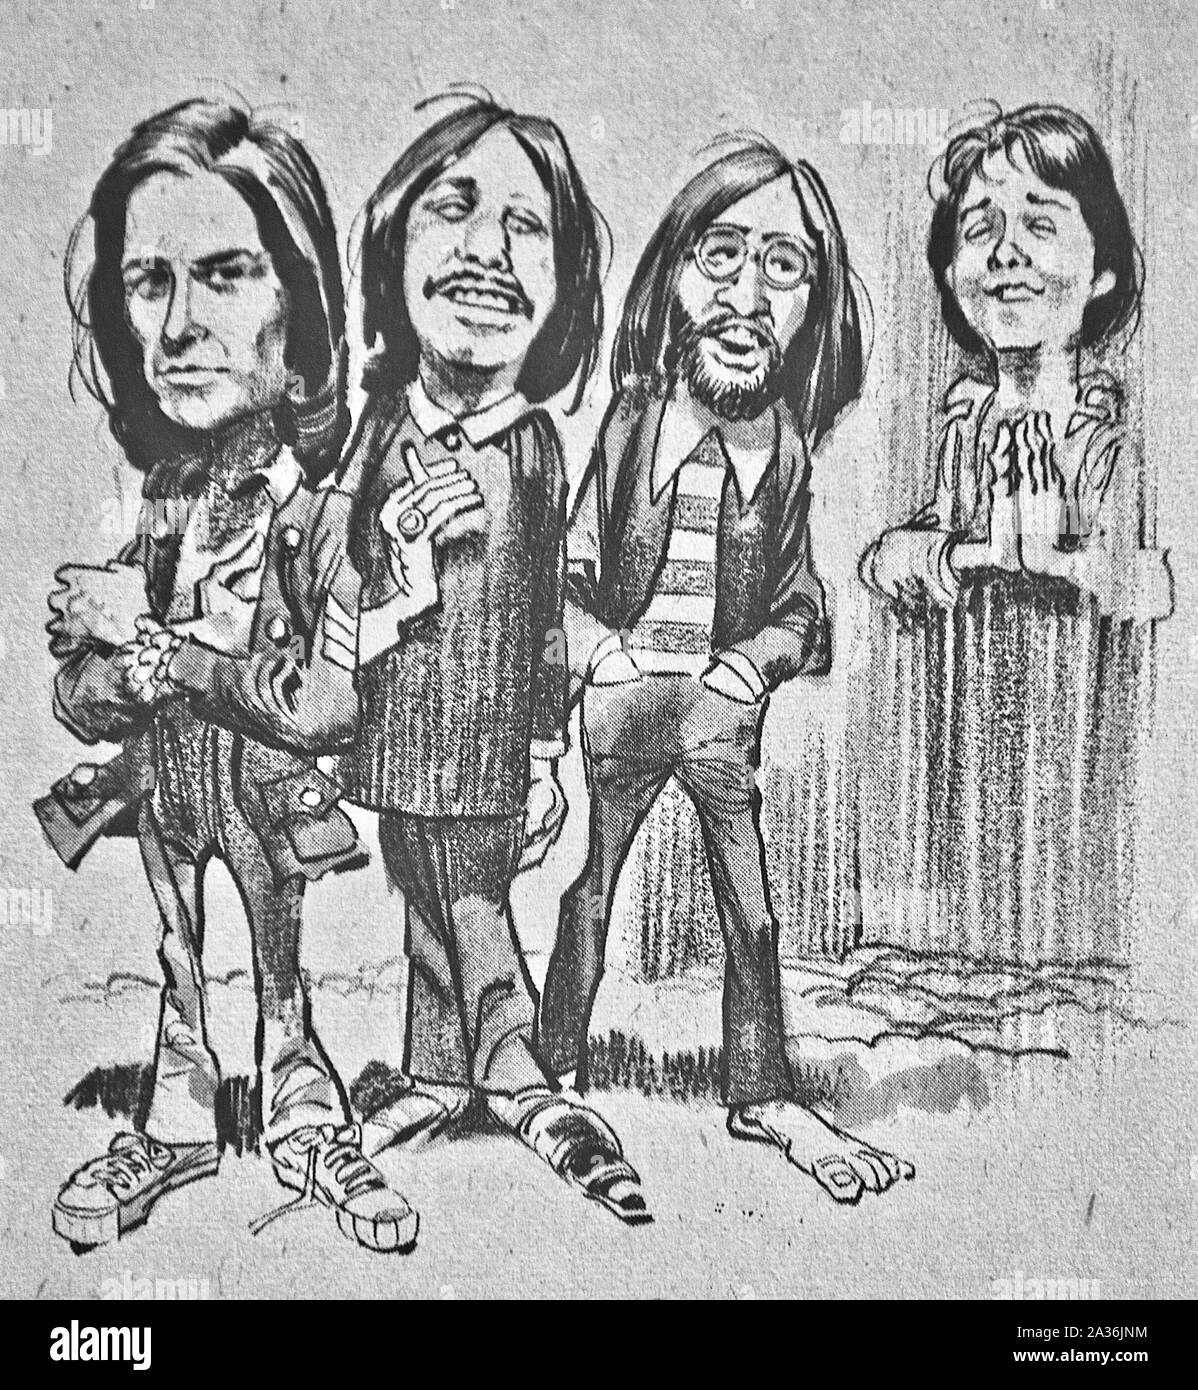 John Lennon Caricature High Resolution Stock Photography And Images Alamy